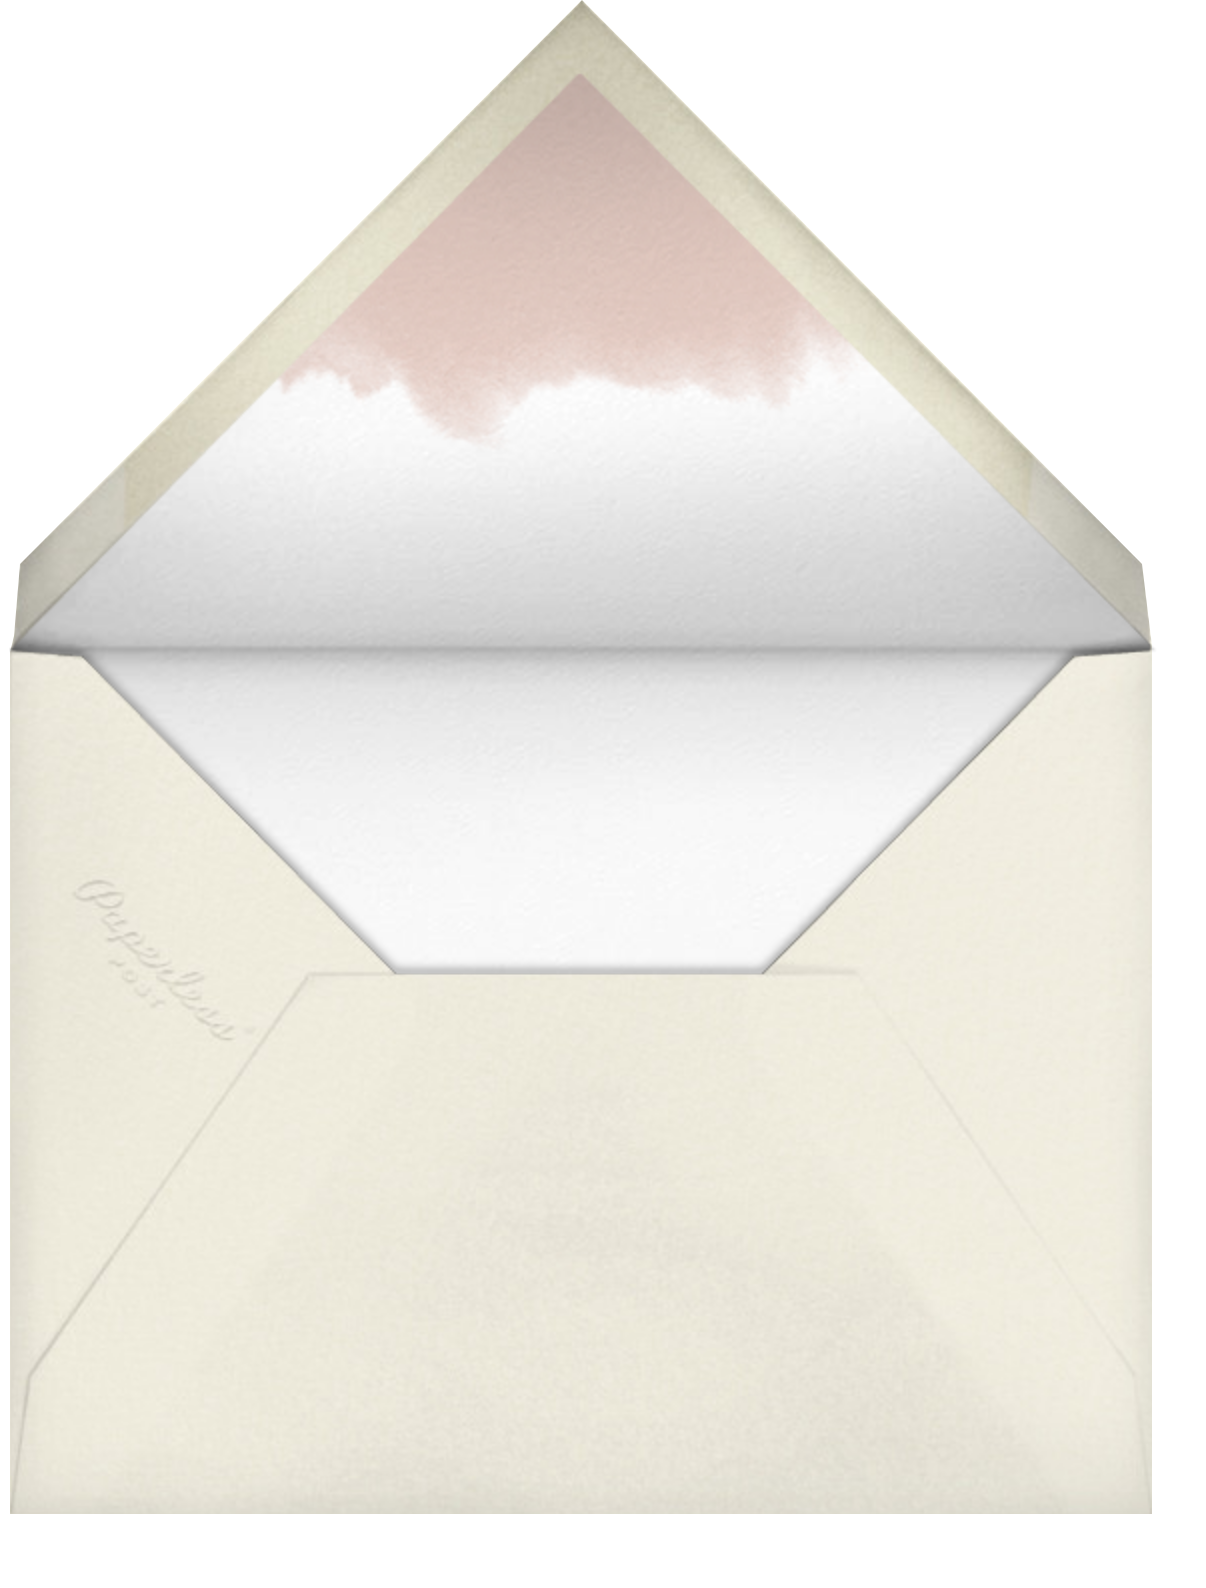 Meringue (Tall) - Paperless Post - Charity and fundraiser  - envelope back